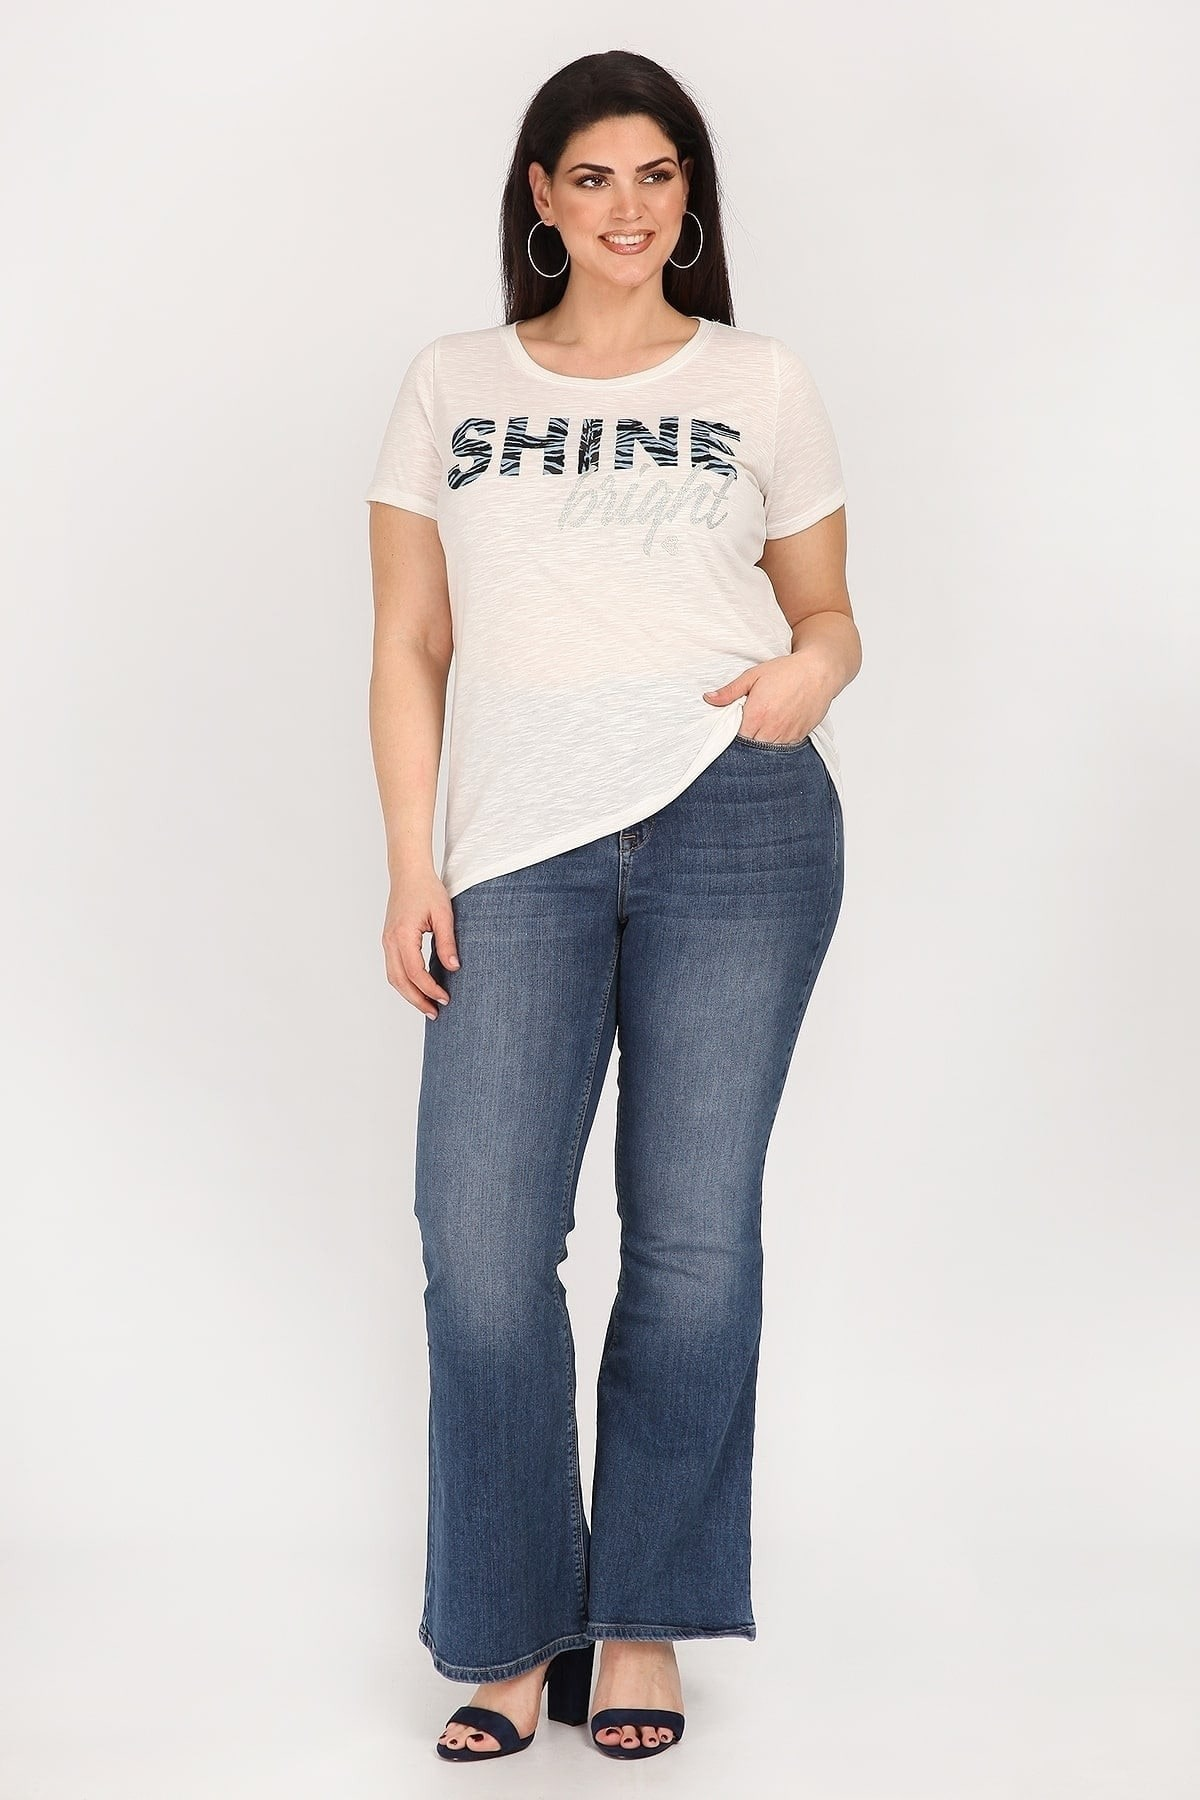 Melange blouse with logo SHINE BRIGHT